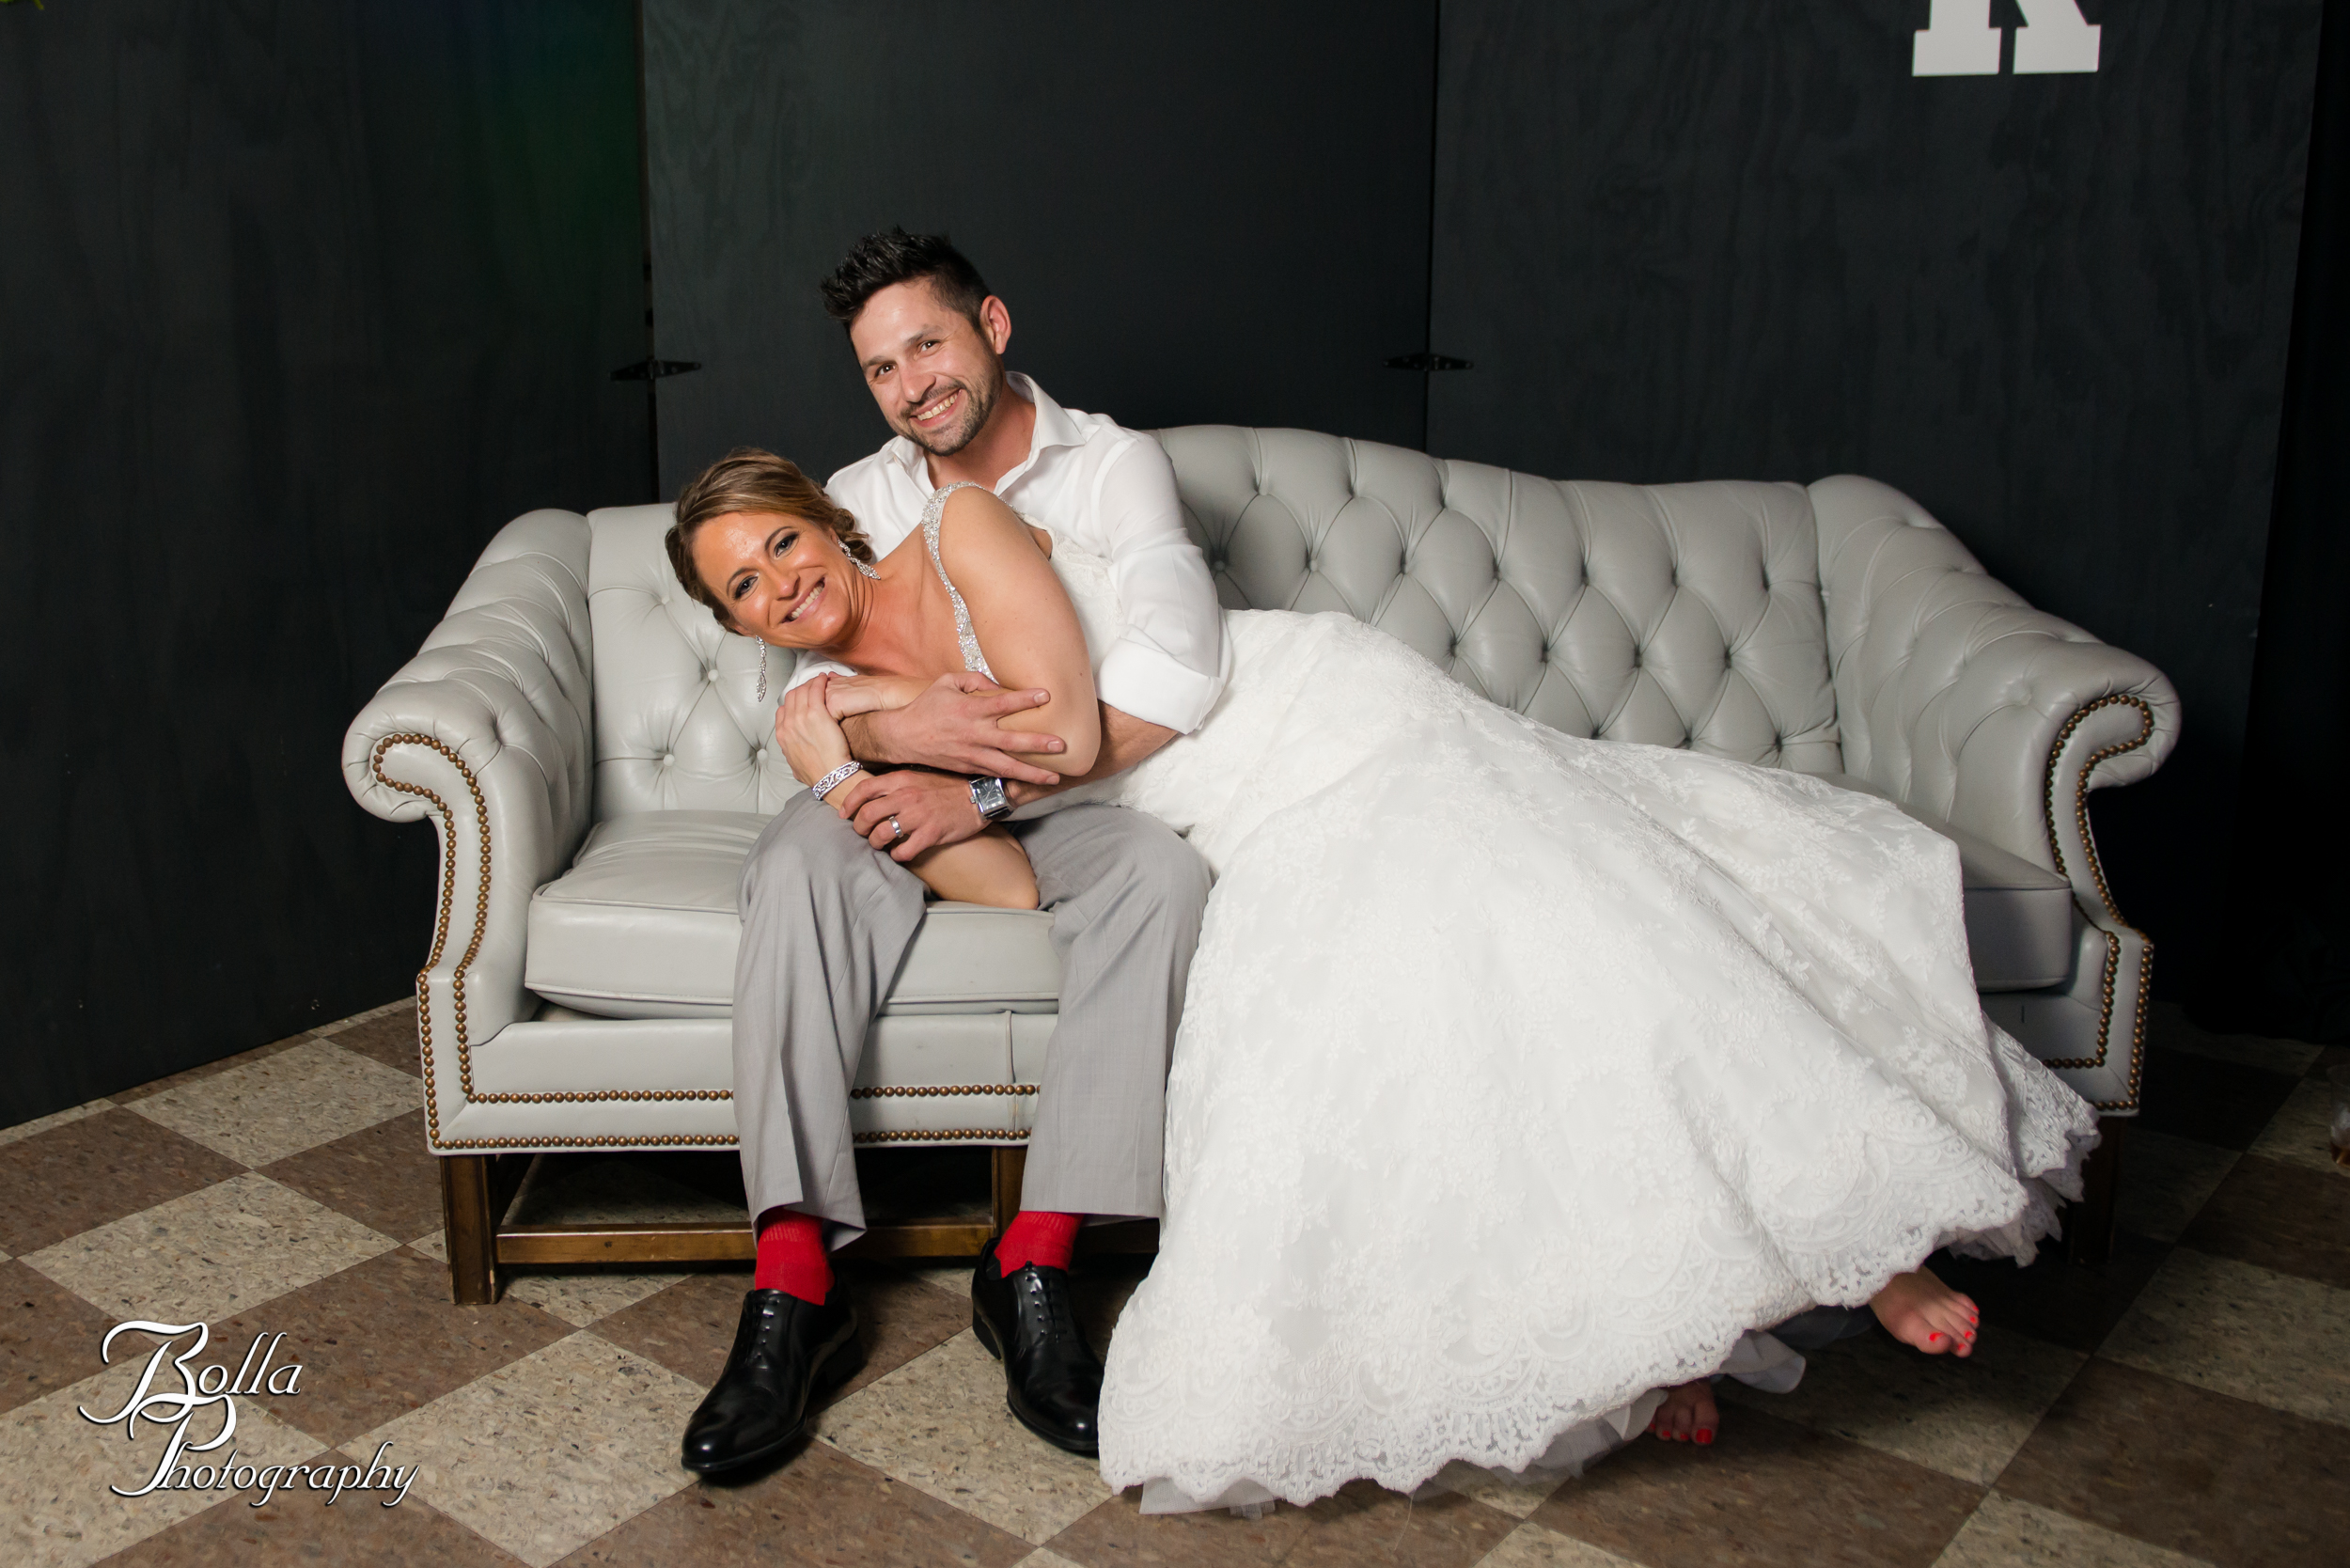 Bolla_photography_edwardsville_wedding_photographer_st_louis_weddings_highland_Allen_Warren_winter_red-0559.jpg